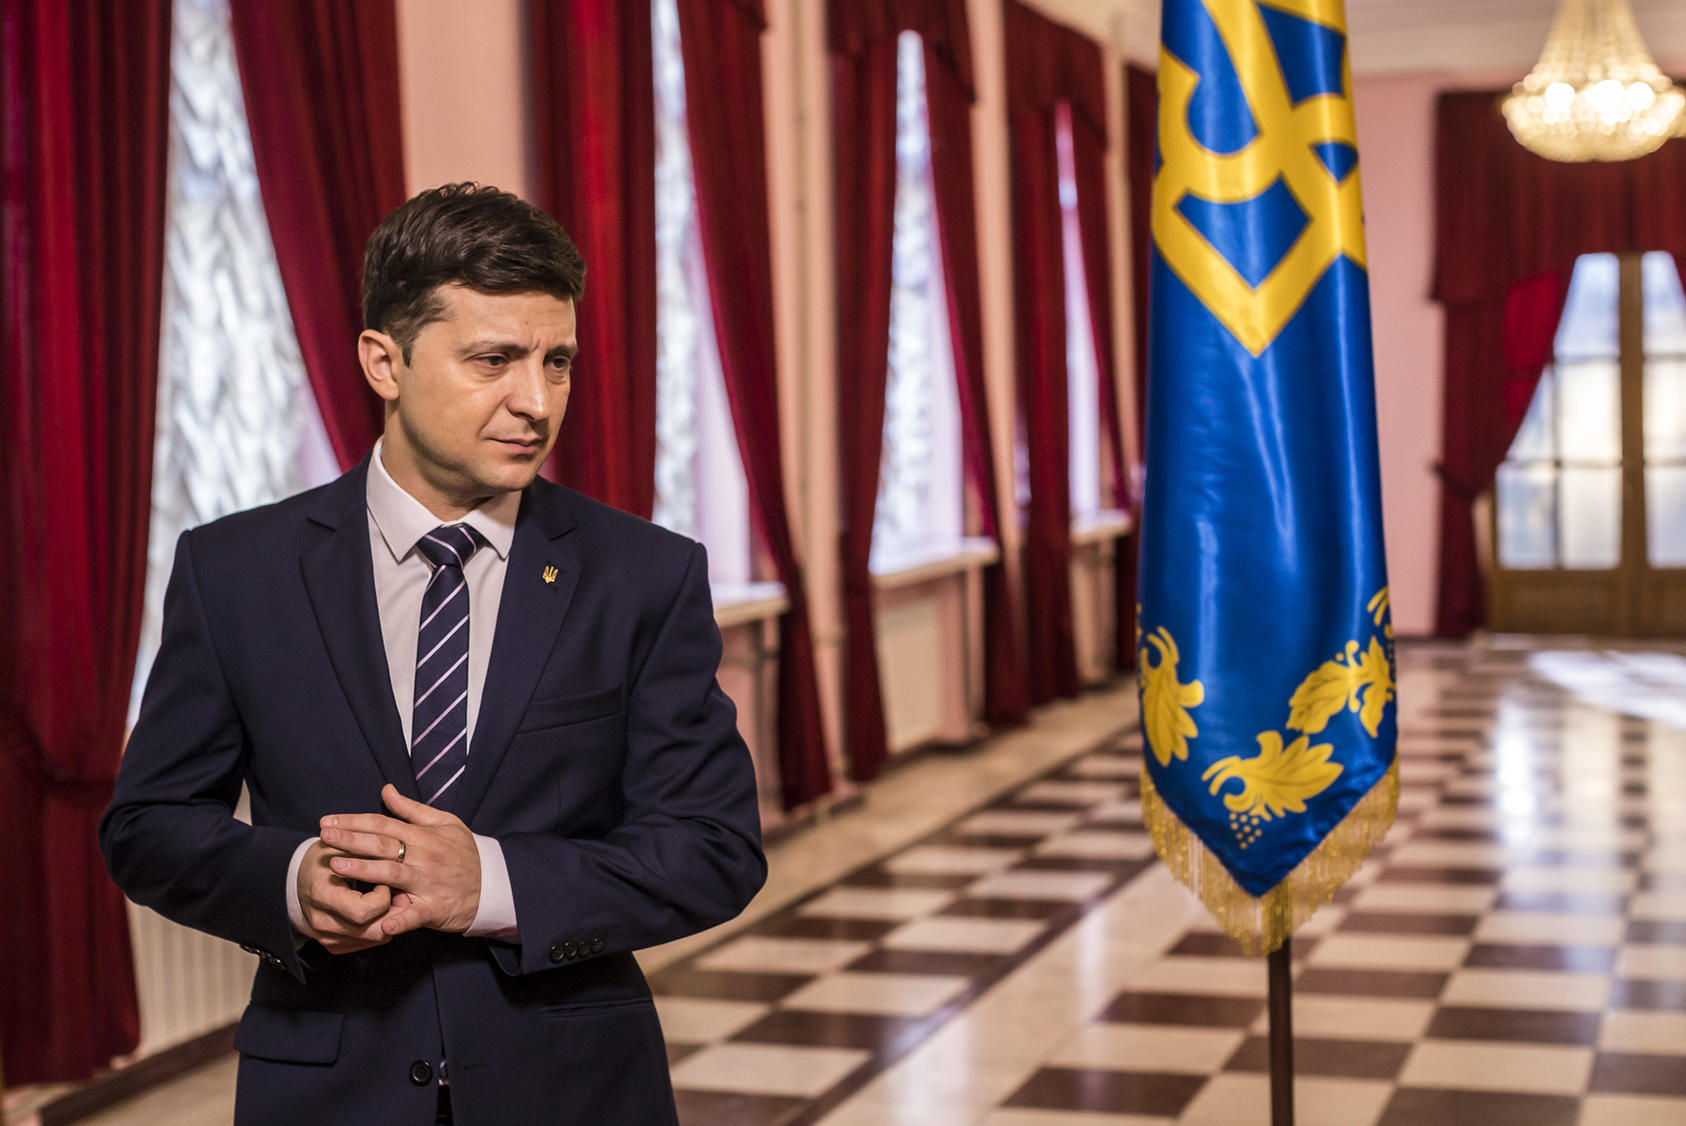 Volodymyr Zelenskiy plays a Ukrainian president on the set of his TV show. He won 30 percent of the vote for Ukraine's real presidency and will face President Petro Poroshenko in a runoff. (Brendan Hoffman/The New York Times)